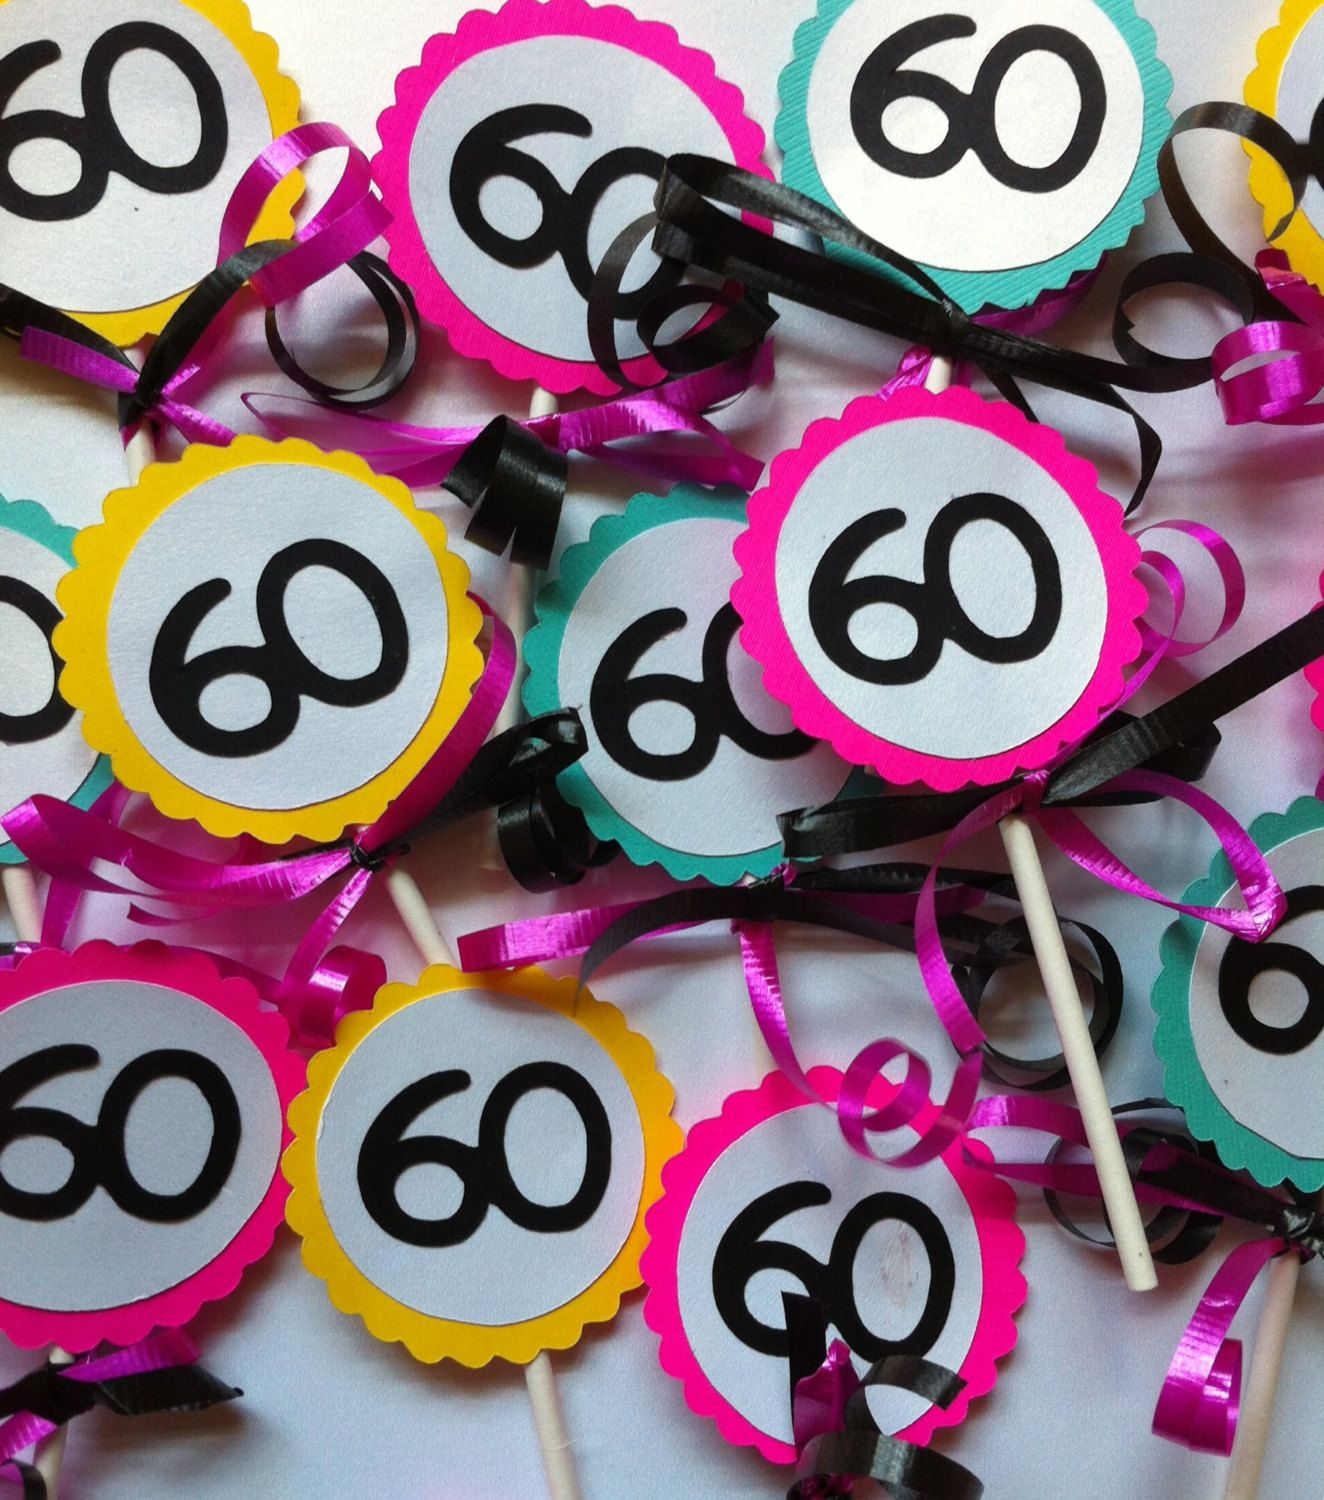 Popular items for 60th birthday decorations on Etsy